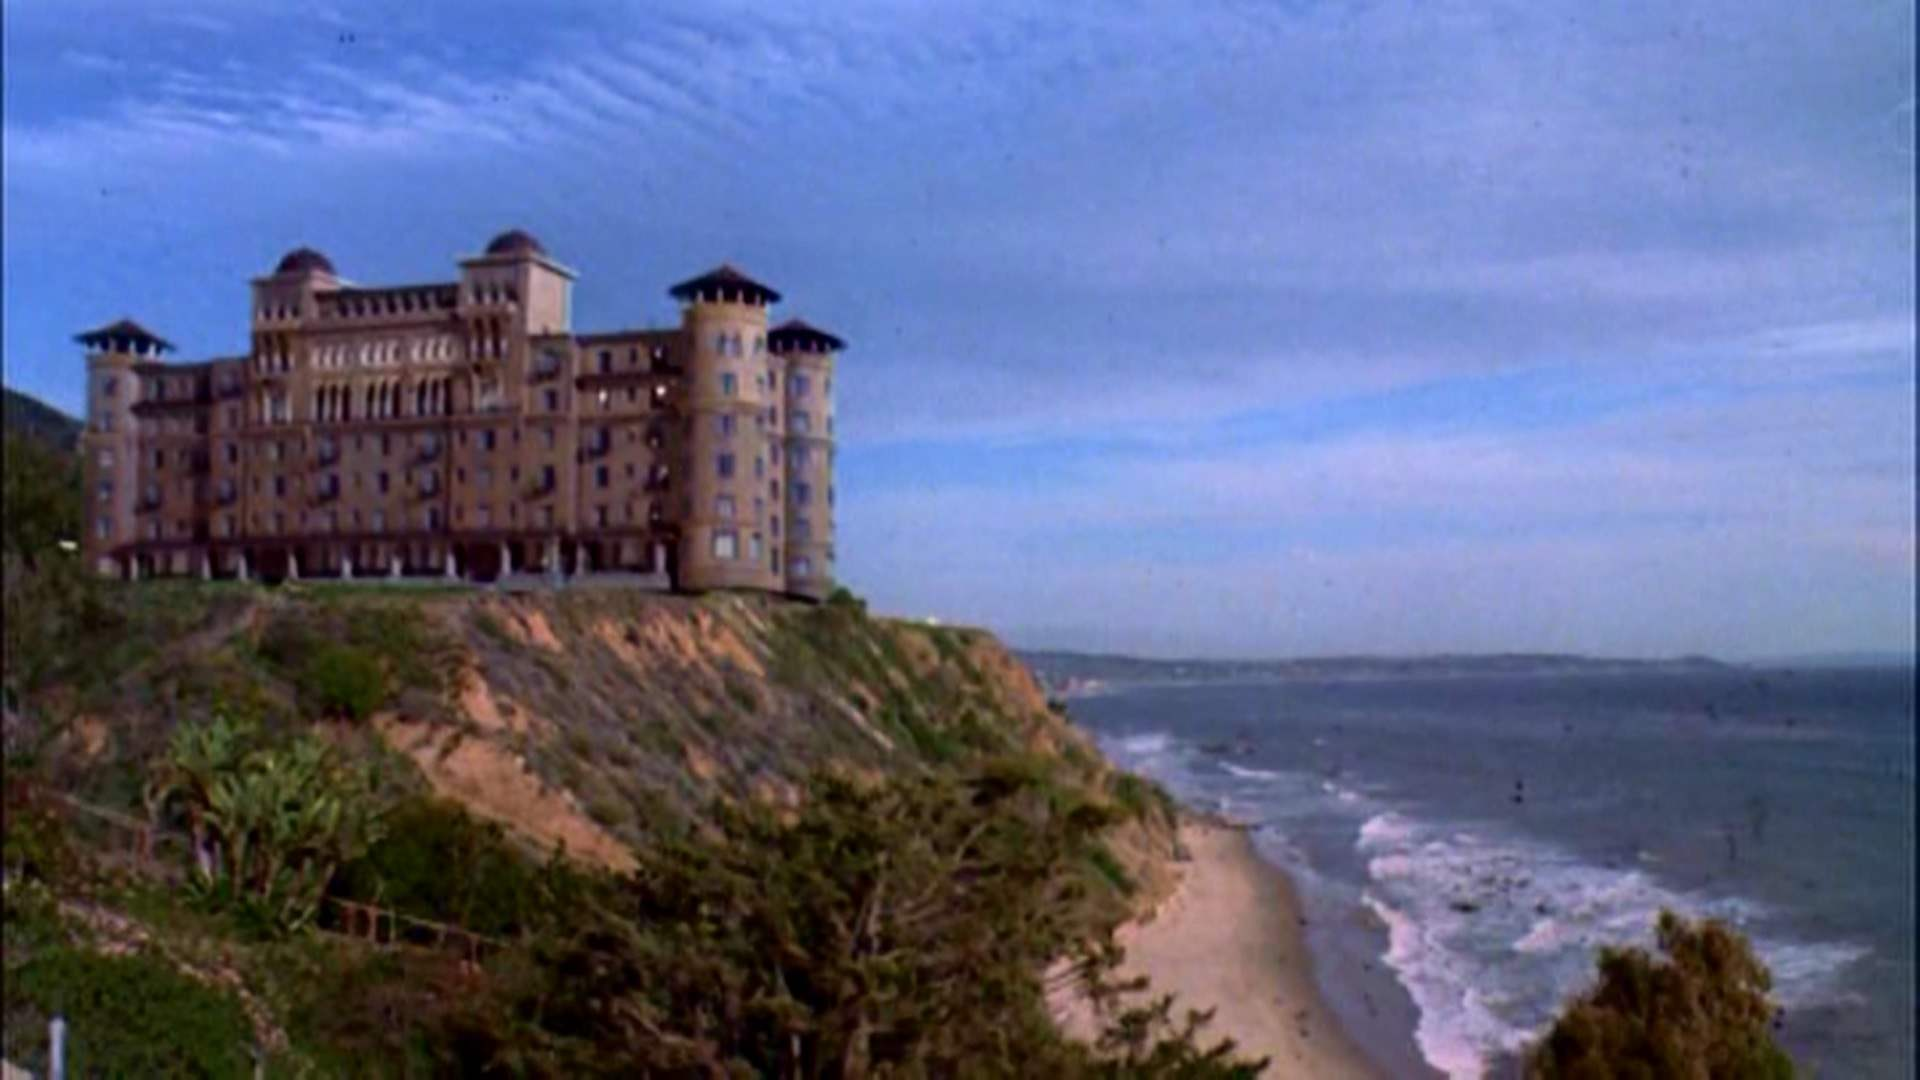 The Bodega Bay Inn in Puppet Master